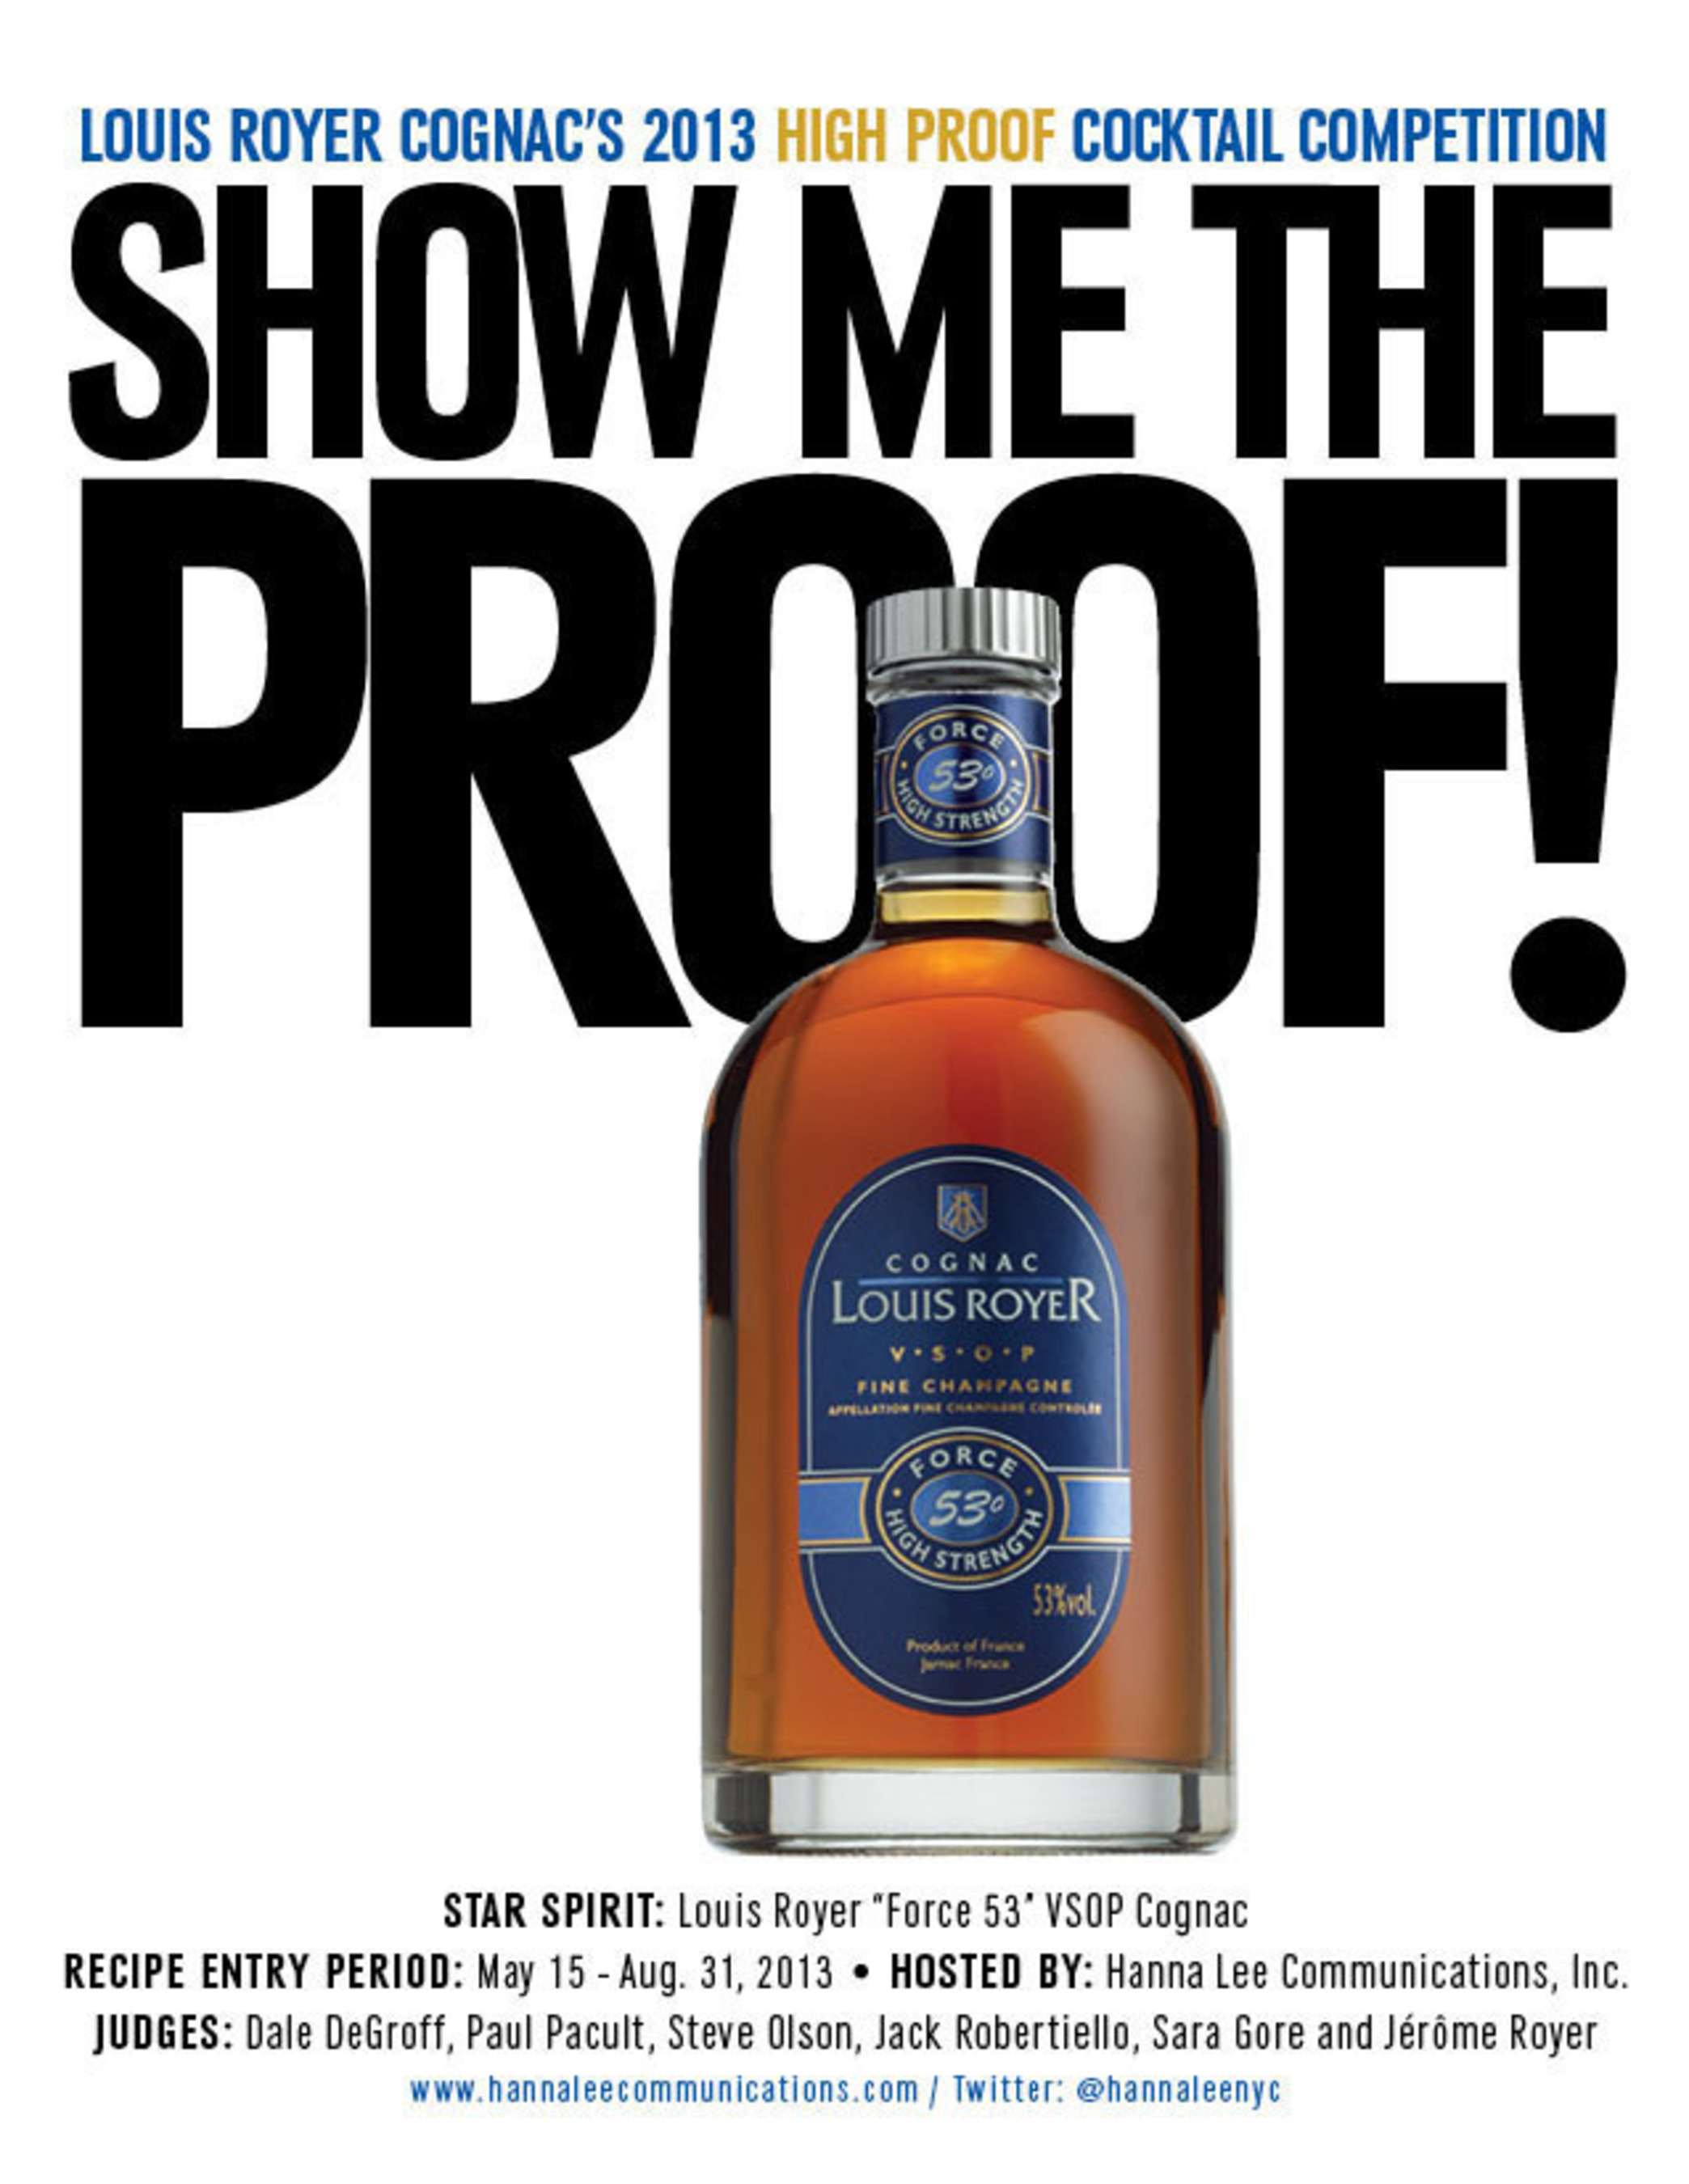 """Louis Royer Cognac Names 12 Finalists of the Second Annual """"Show Me the Proof!"""" High Proof Cognac Cocktail Competition Celebrating Louis Royer """"Force 53"""" VSOP Cognac. (PRNewsFoto/Louis Royer Cognac) (PRNewsFoto/LOUIS ROYER COGNAC)"""